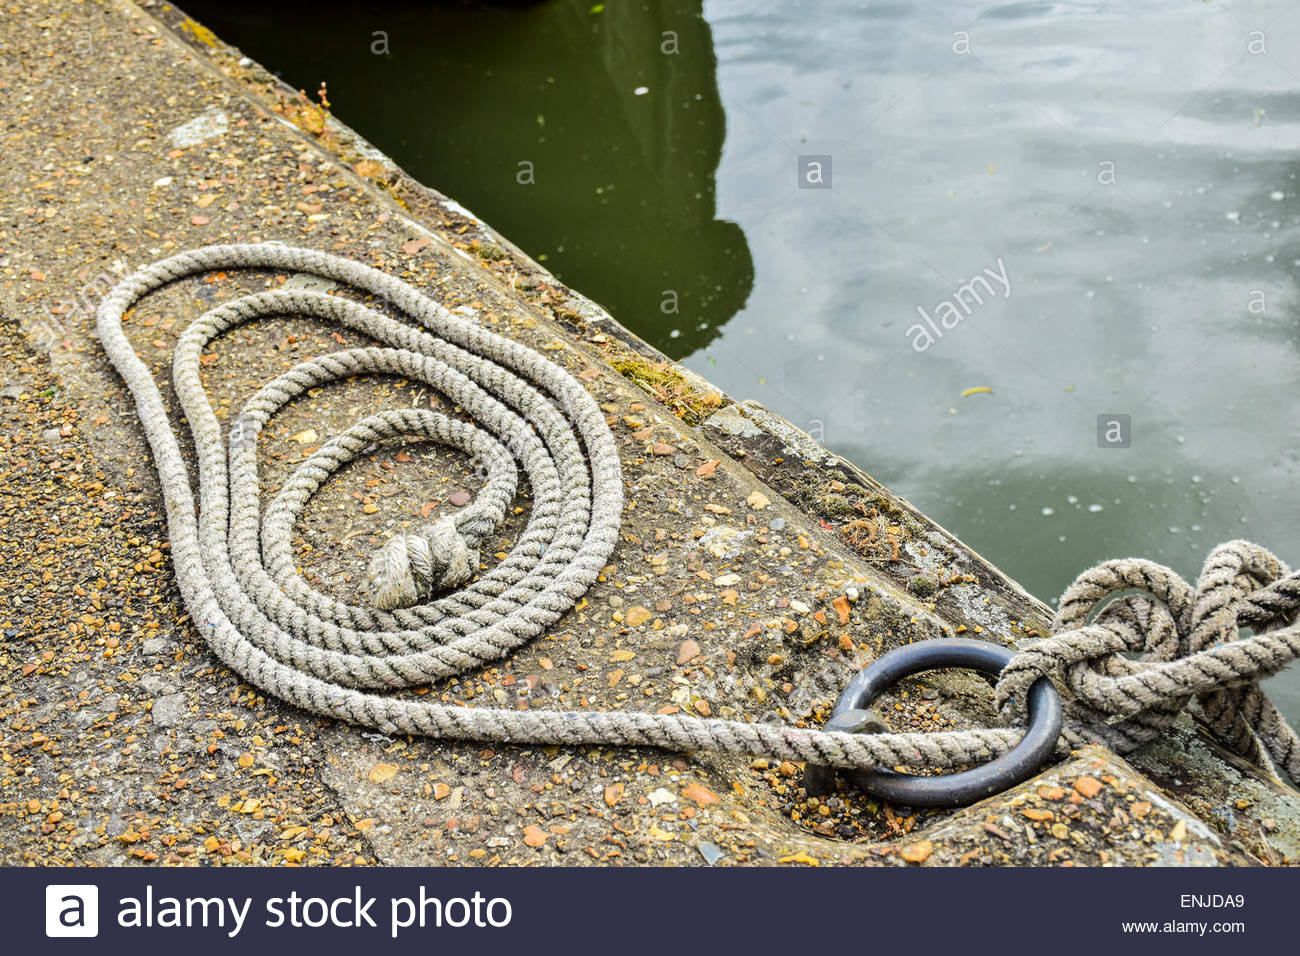 A coil of rope next to a boat mooring - Stock Image